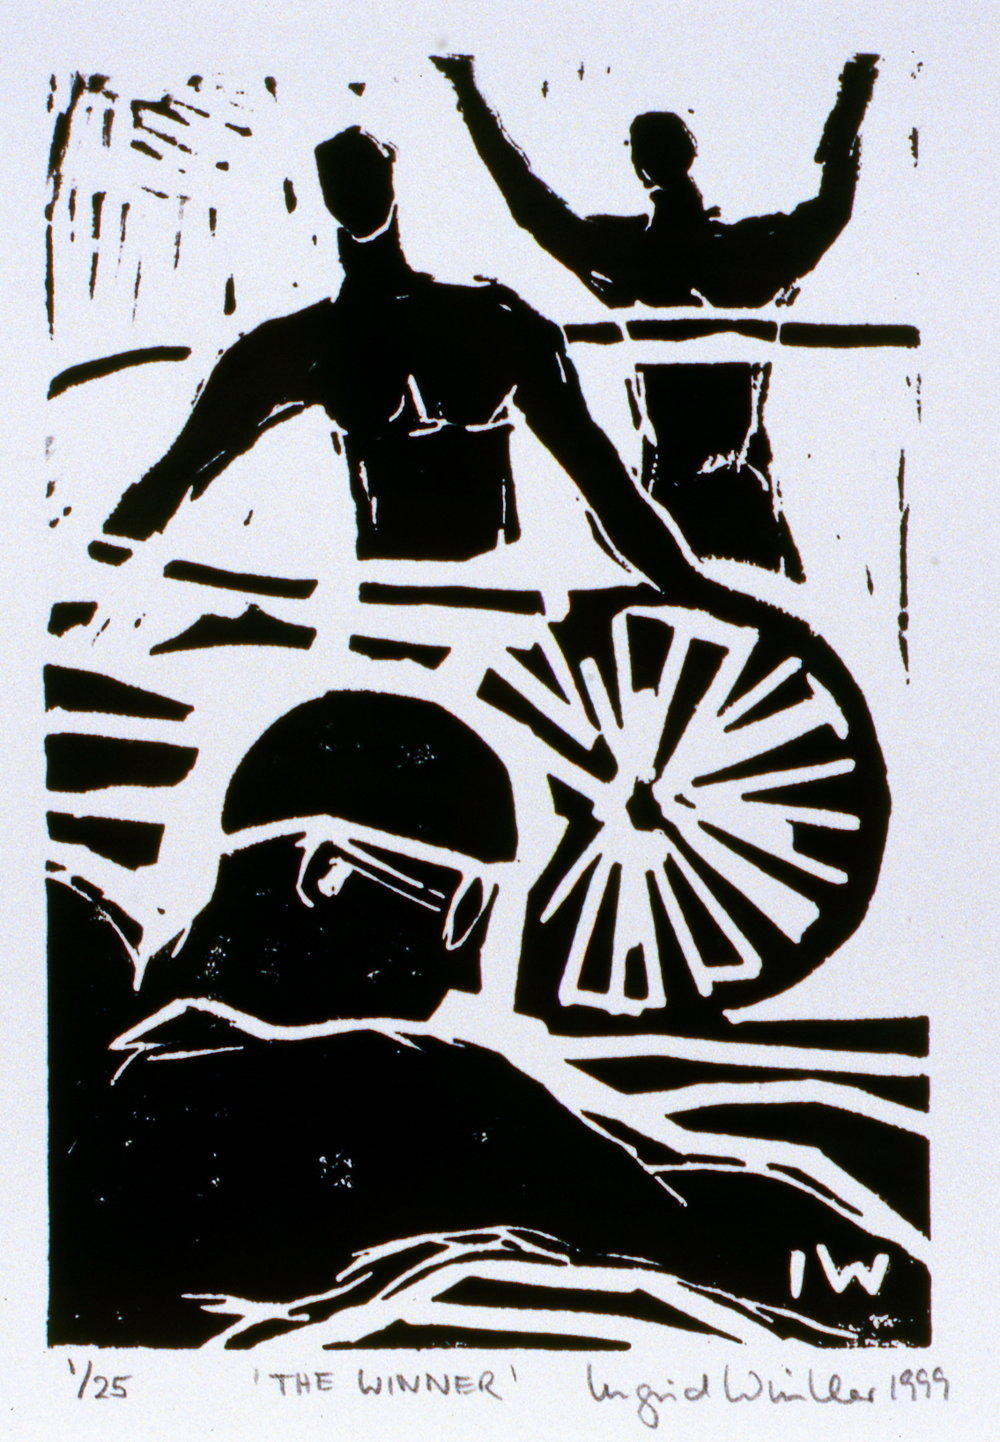 The Winner,  1999, Ingrid Winkler, linocut print, 17.7 x 12.5 cm, 1999.02.07, The Spirit of Ironman Linocut Prints, edition 1/25, gift of the artist